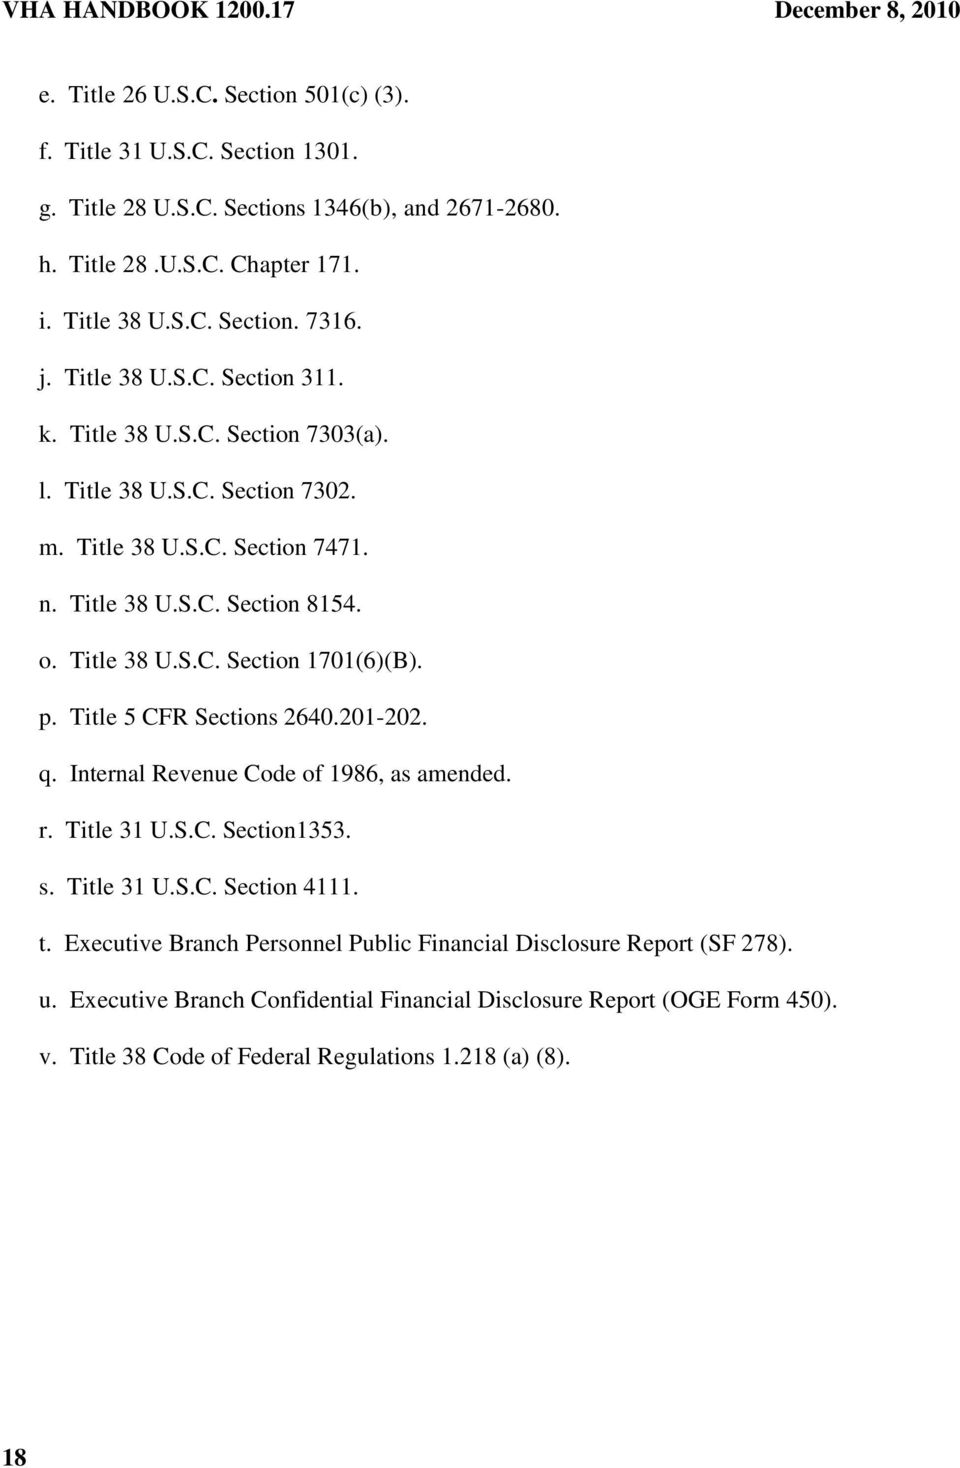 o. Title 38 U.S.C. Section 1701(6)(B). p. Title 5 CFR Sections 2640.201-202. q. Internal Revenue Code of 1986, as amended. r. Title 31 U.S.C. Section1353. s. Title 31 U.S.C. Section 4111. t.